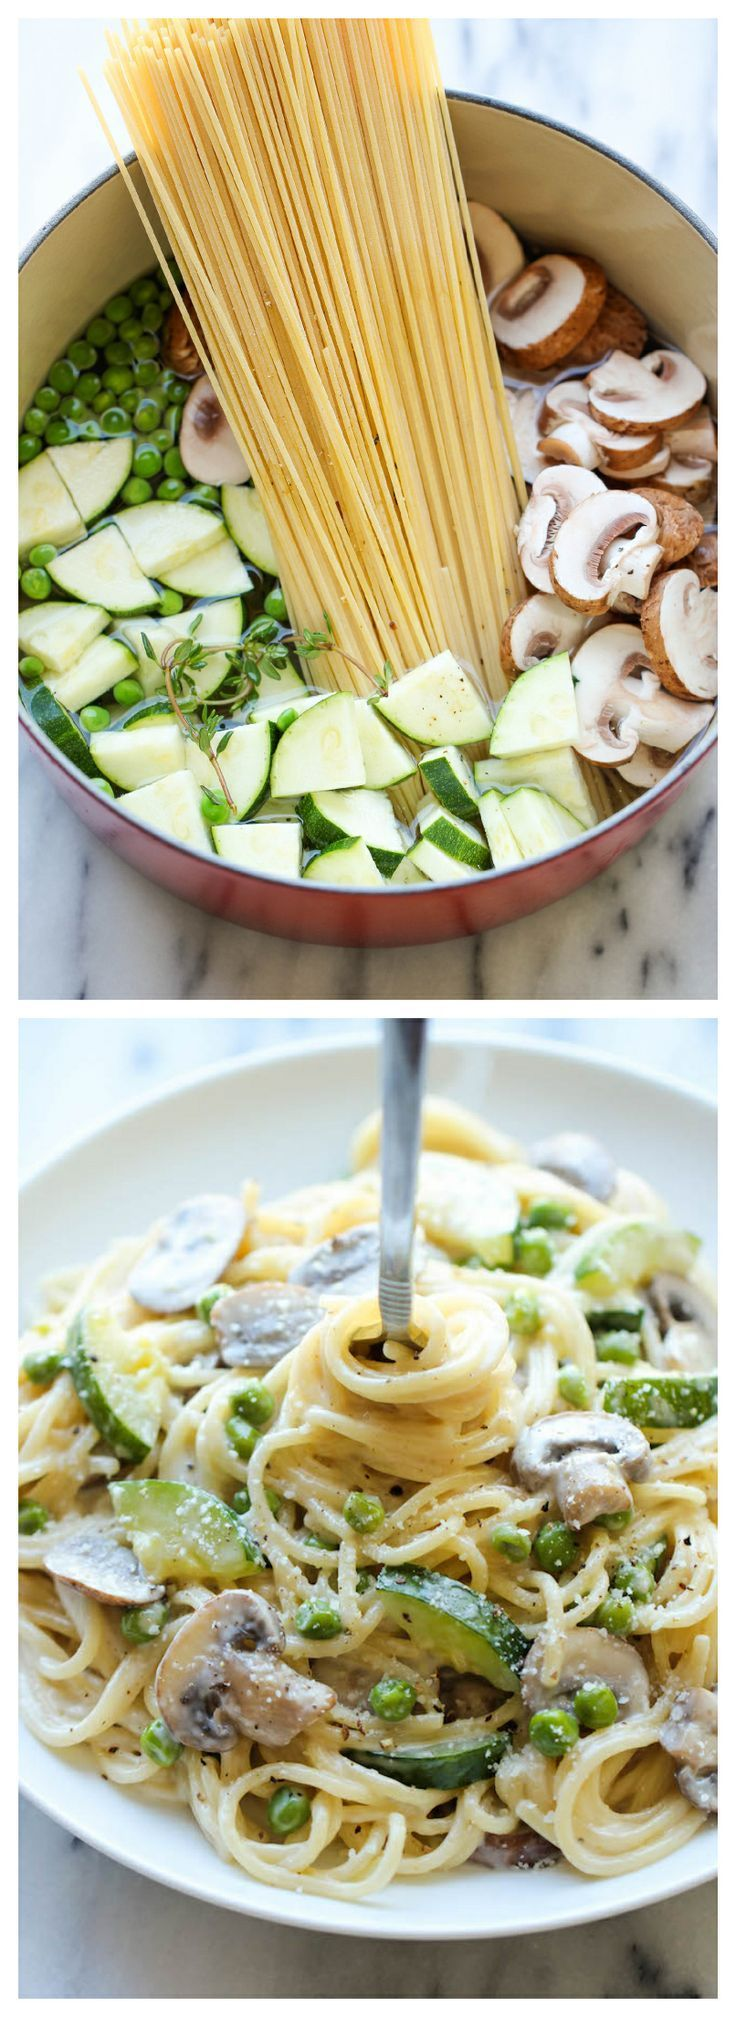 One Pot Zucchini Mushroom Pasta | Looks like an easy healthy recipe to try. #youresopretty